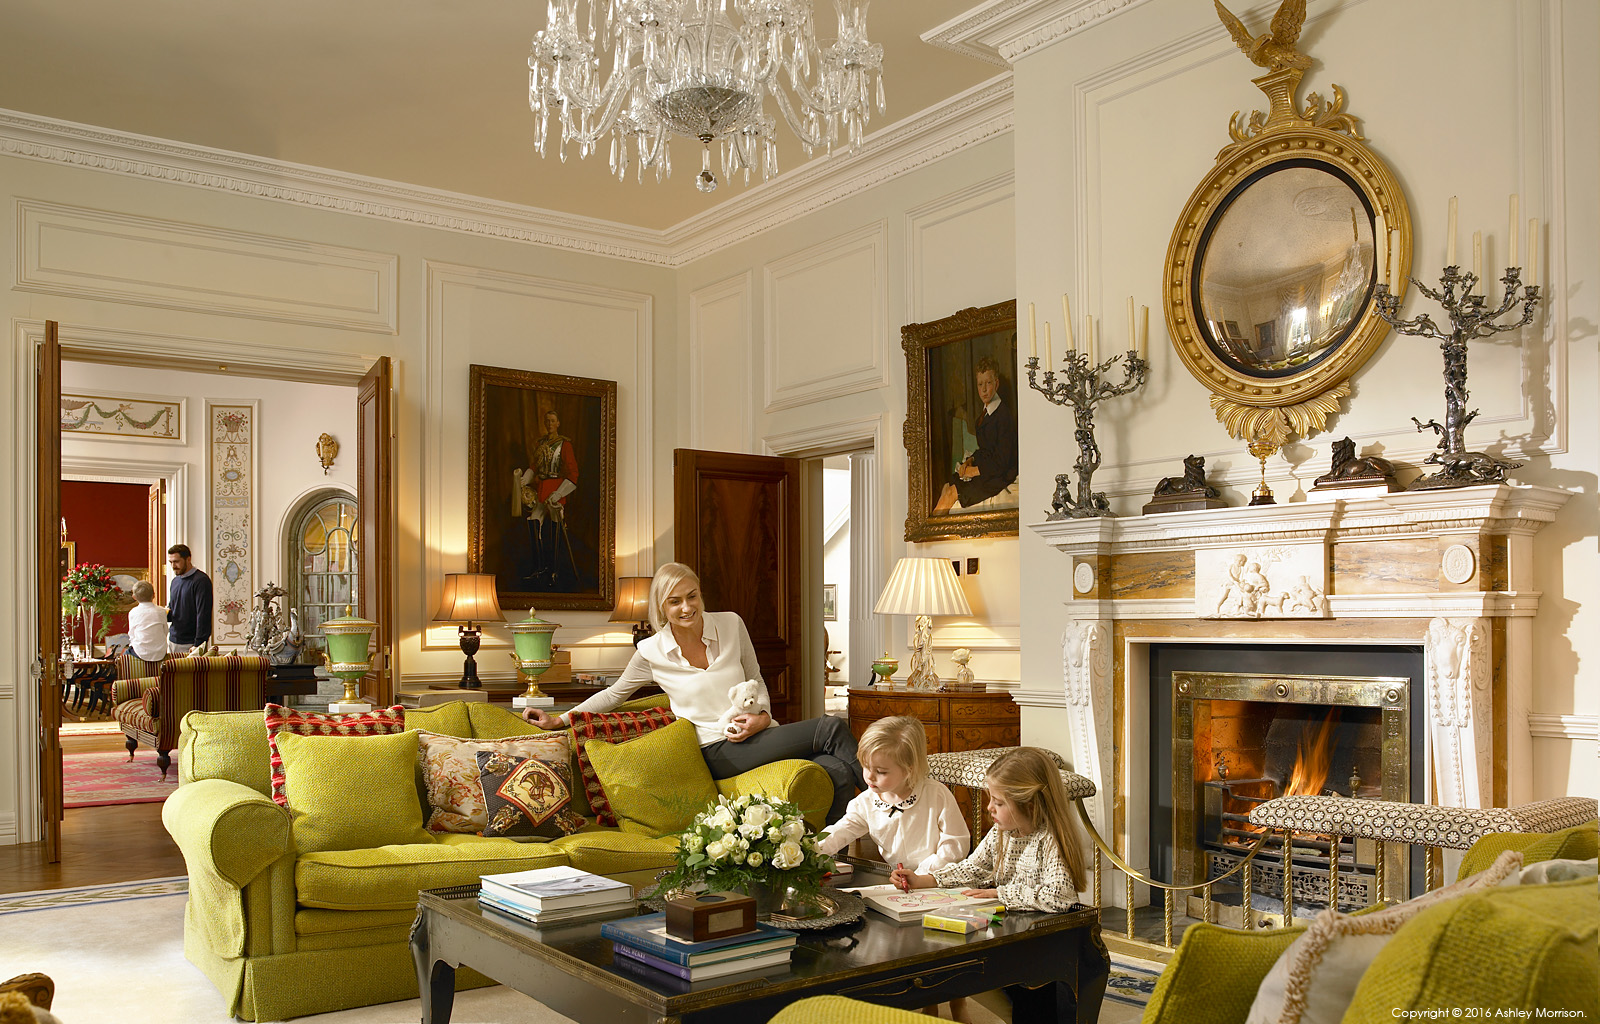 Family in the drawing room in Straffan House at The K Club in County Kildare.